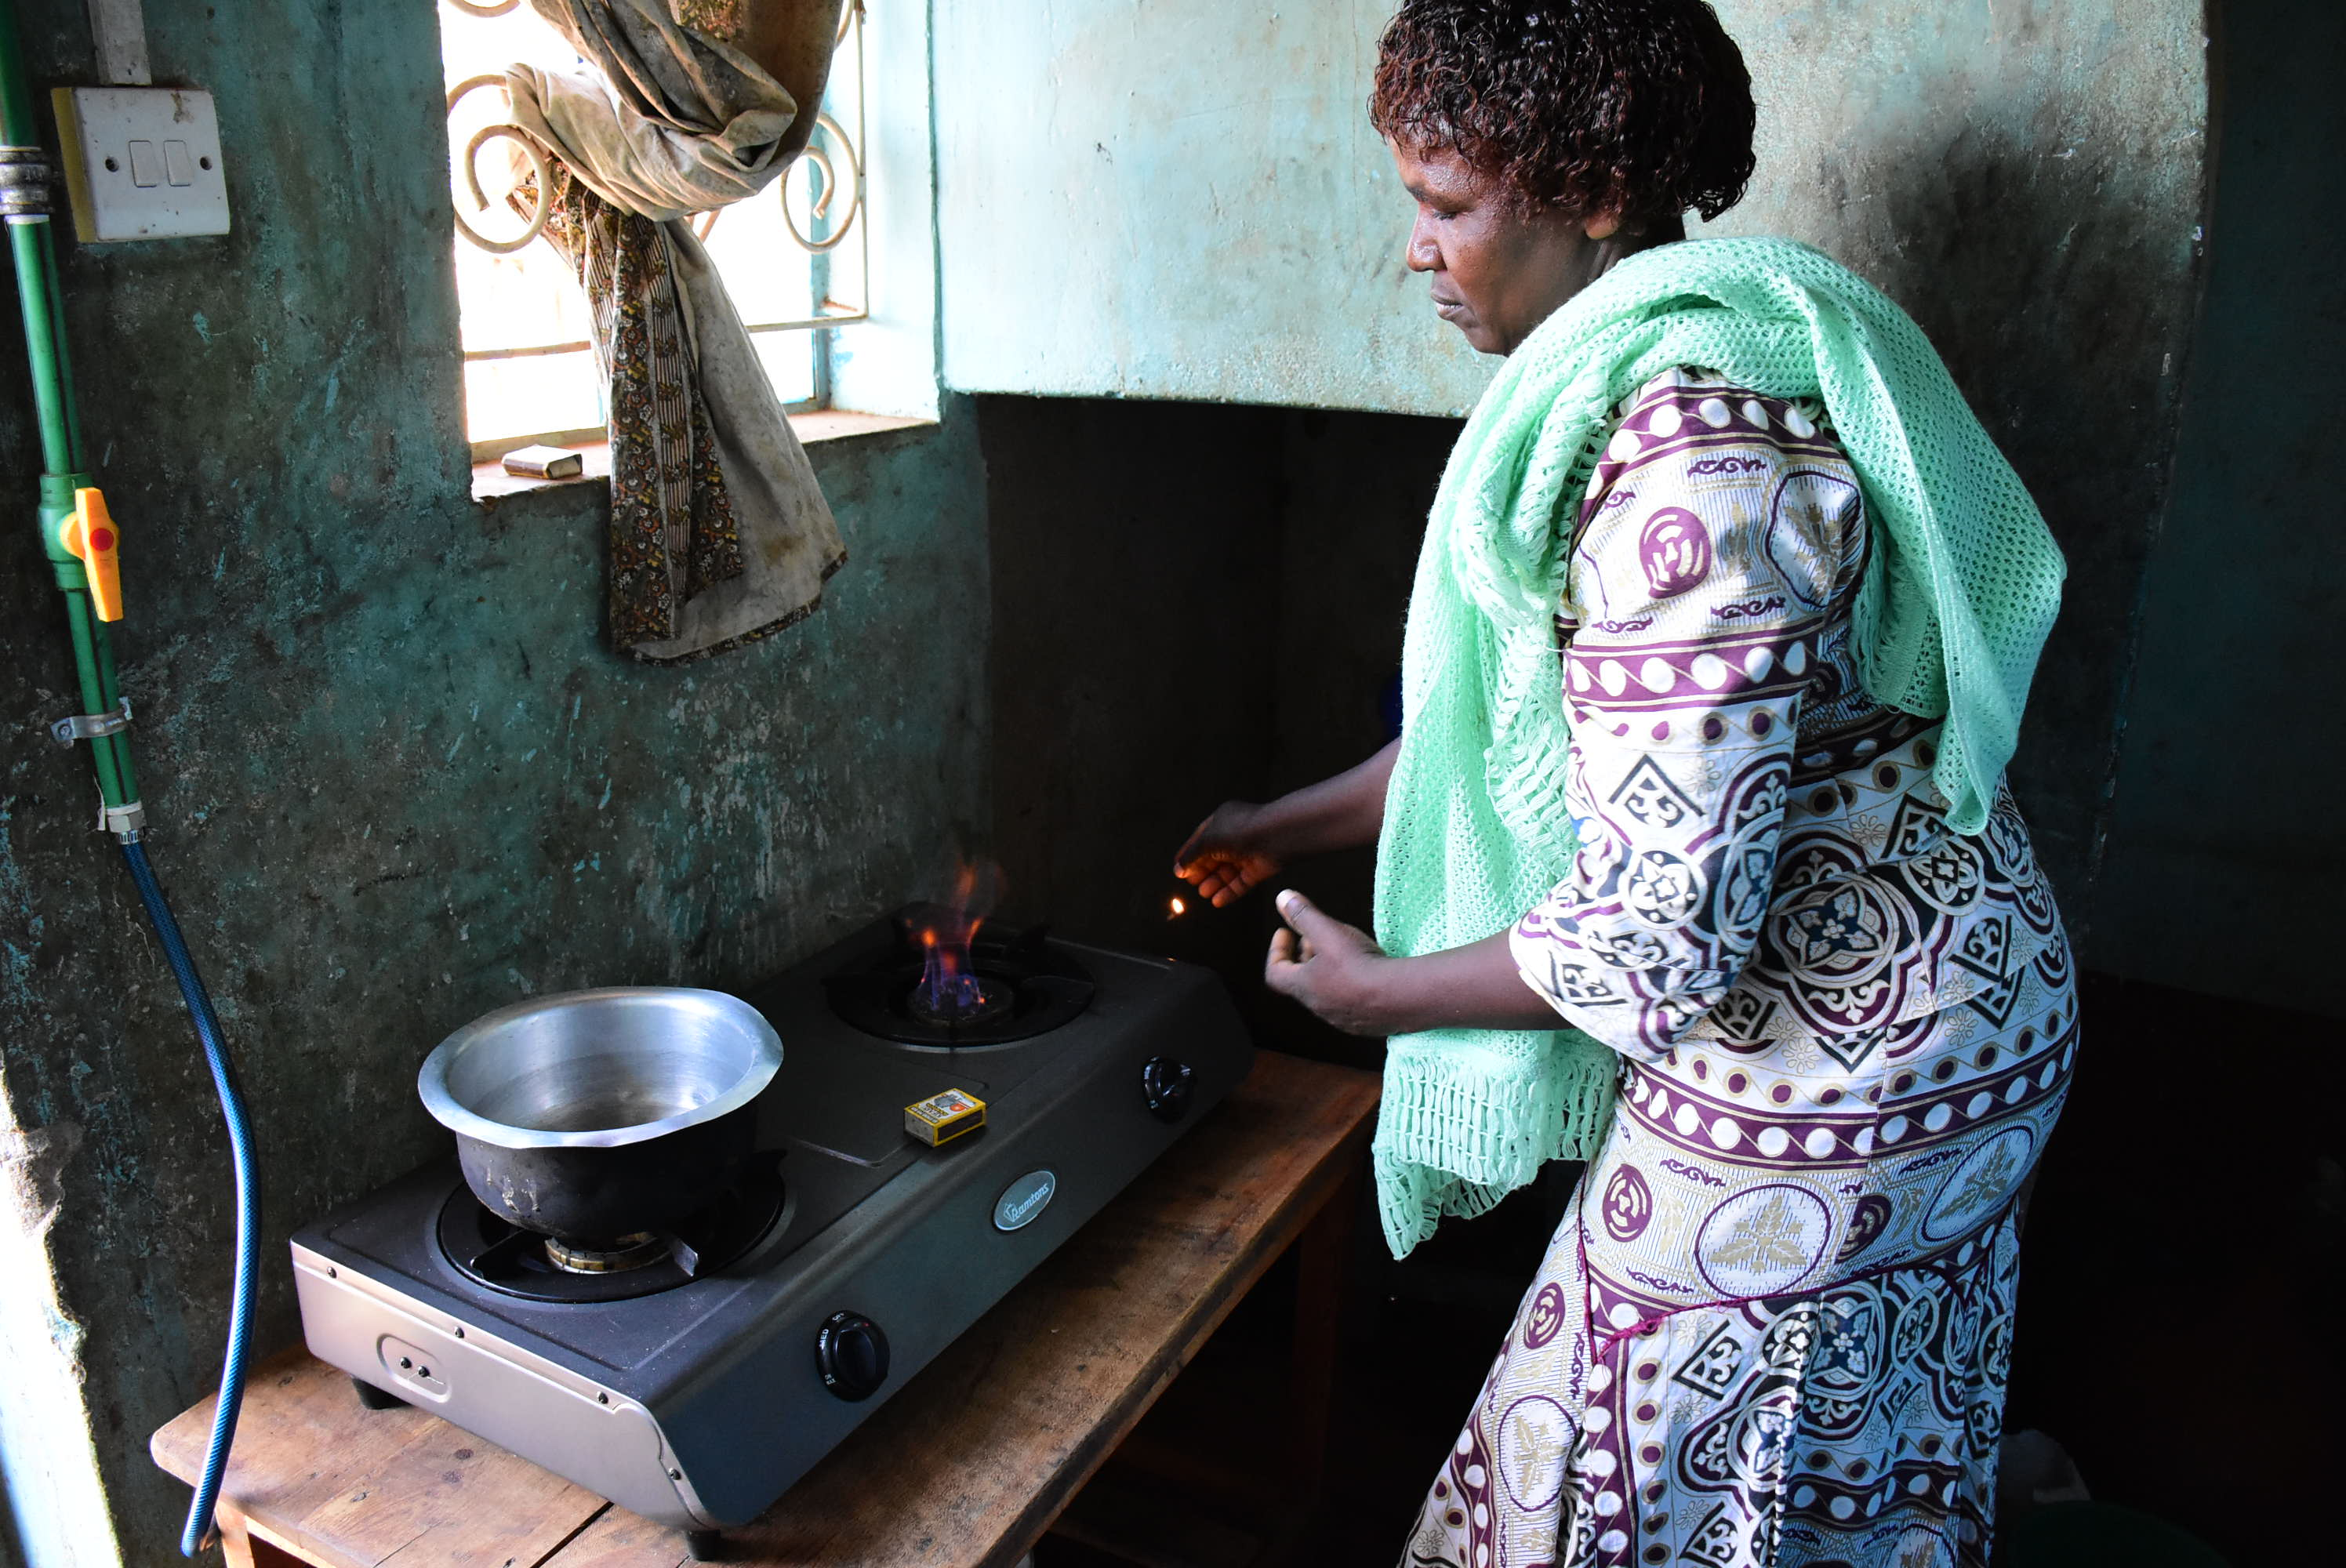 Women and girls are also vulnerable to violence when gathering wood and other cooking fuels, leaving them to face the impossible choice between protecting their personal safety or feeding their families.